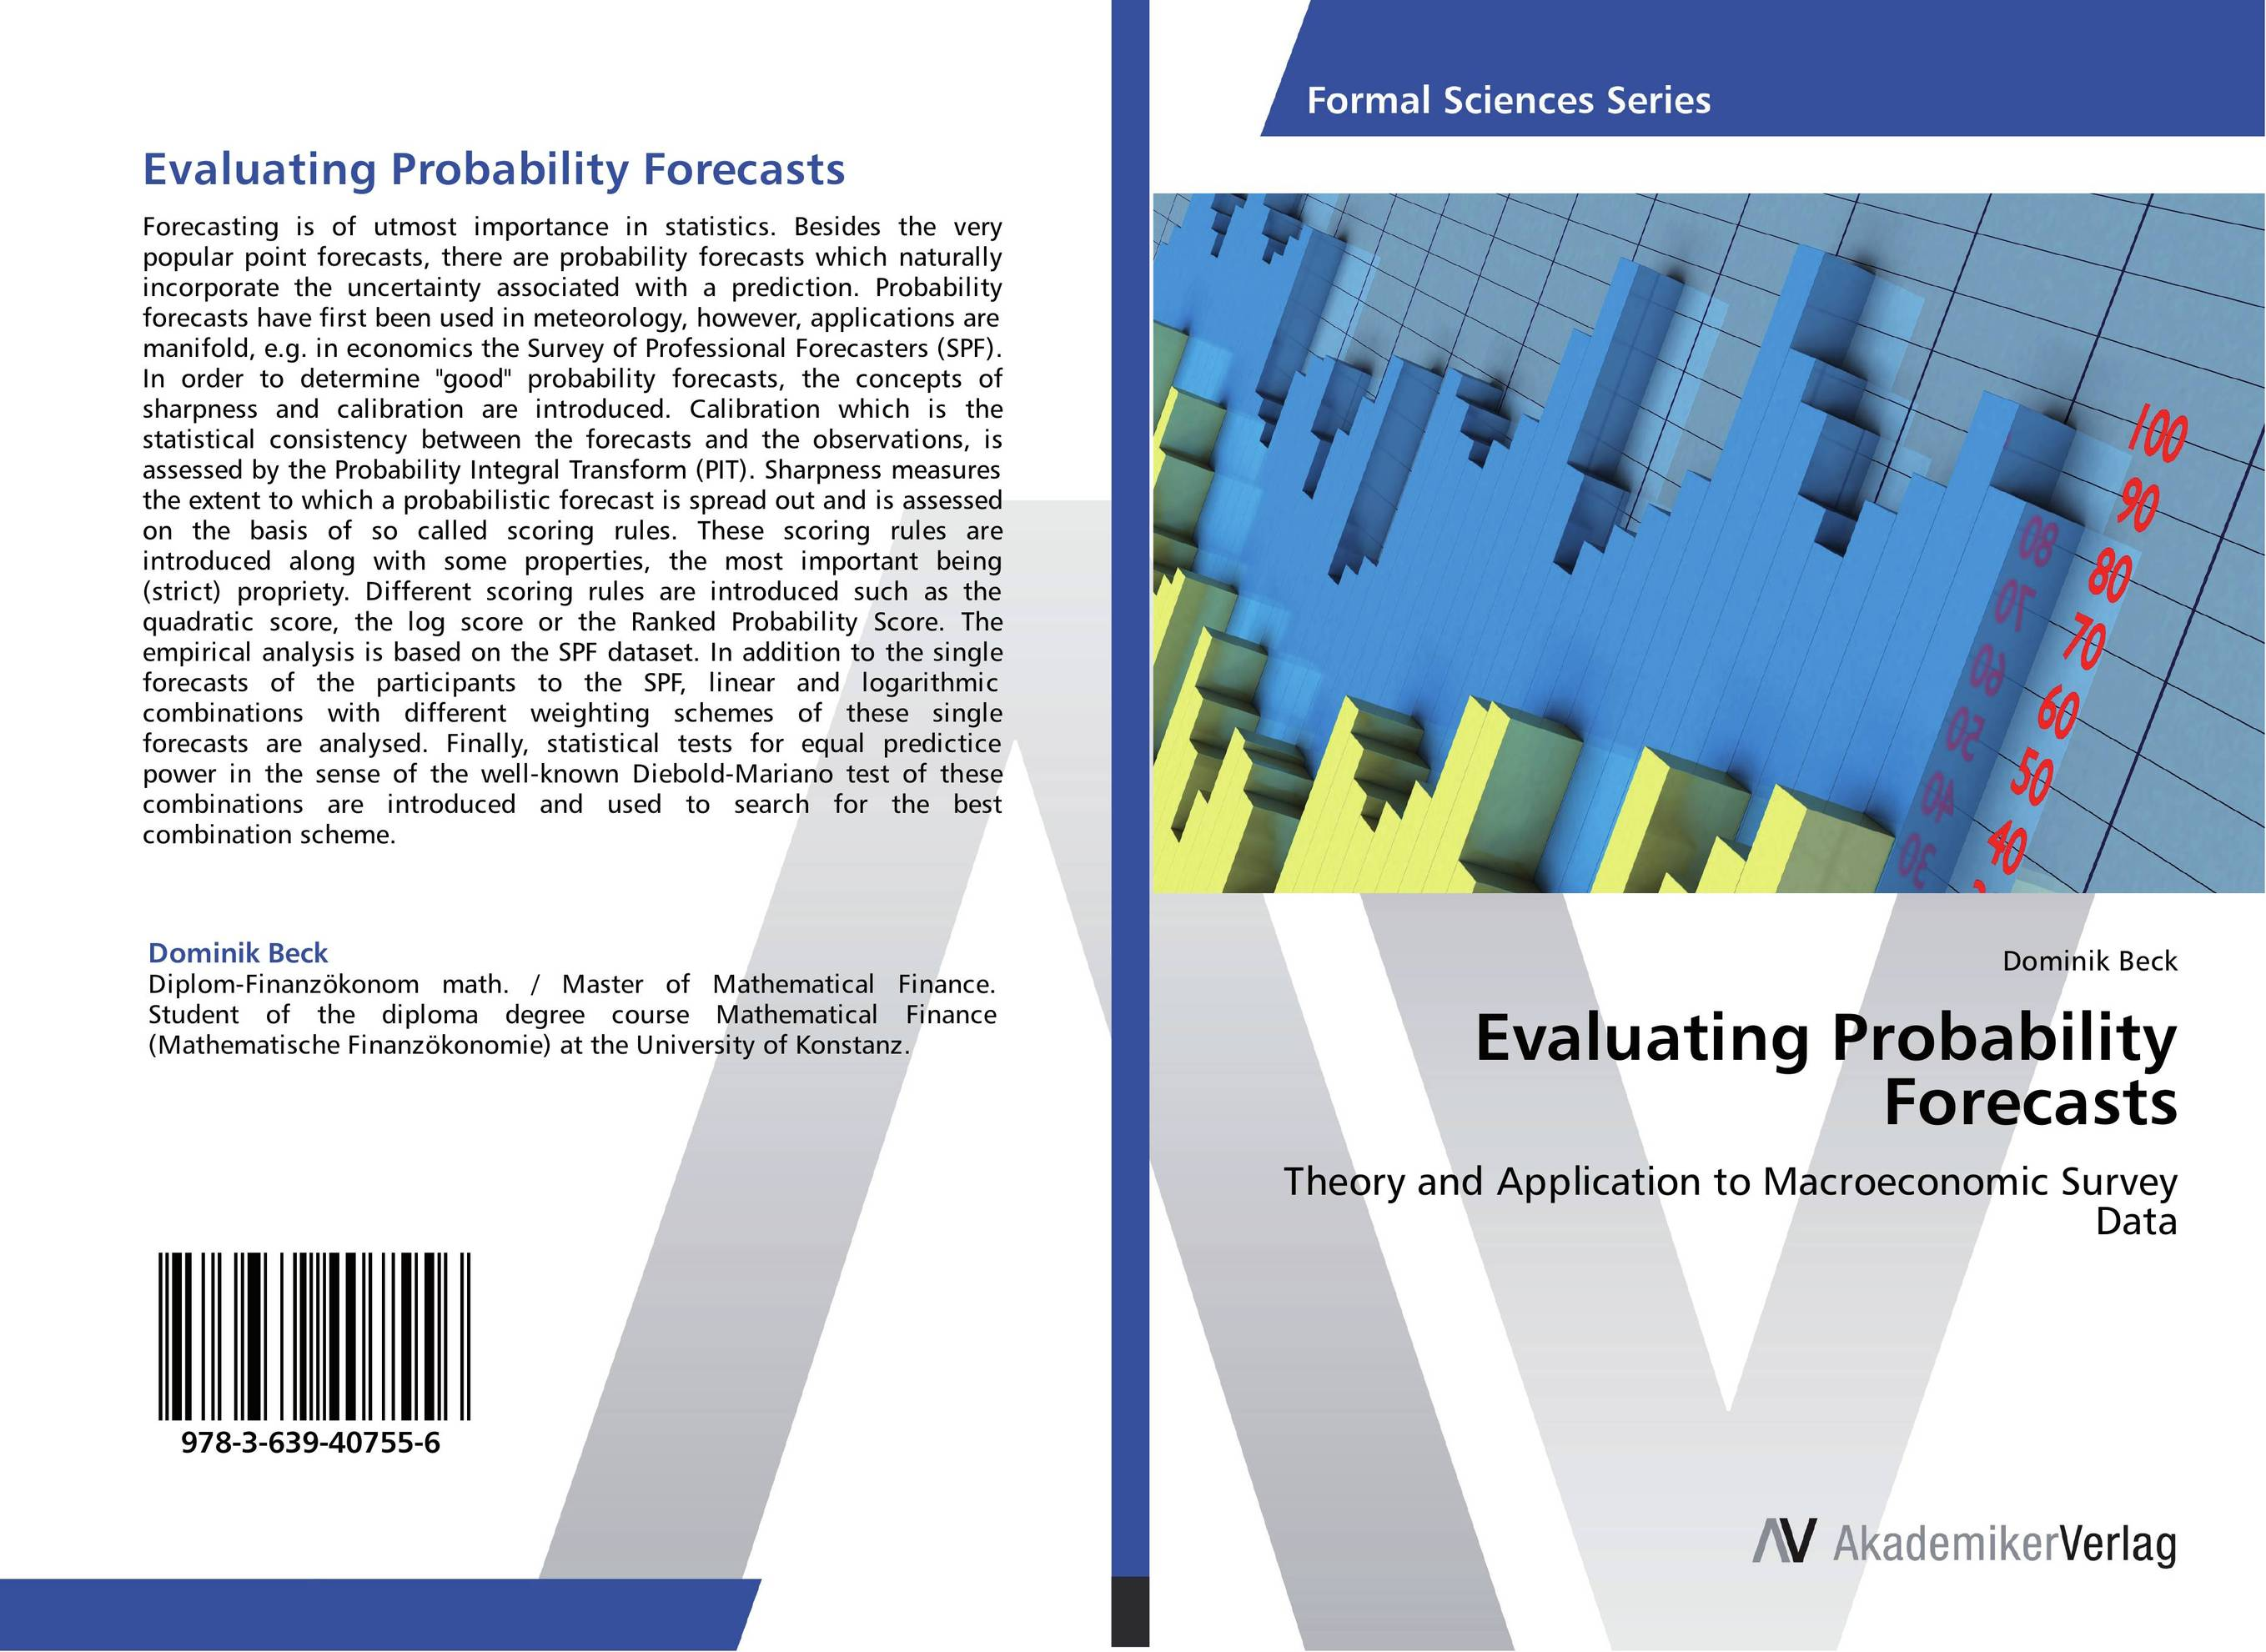 macroeconomic planning and forecasting in the The purpose of the financial forecast is to evaluate current and future fiscal conditions to guide policy and programmatic decisions a financial forecast is a fiscal management tool that presents estimated information based on past, current, and projected financial conditions.